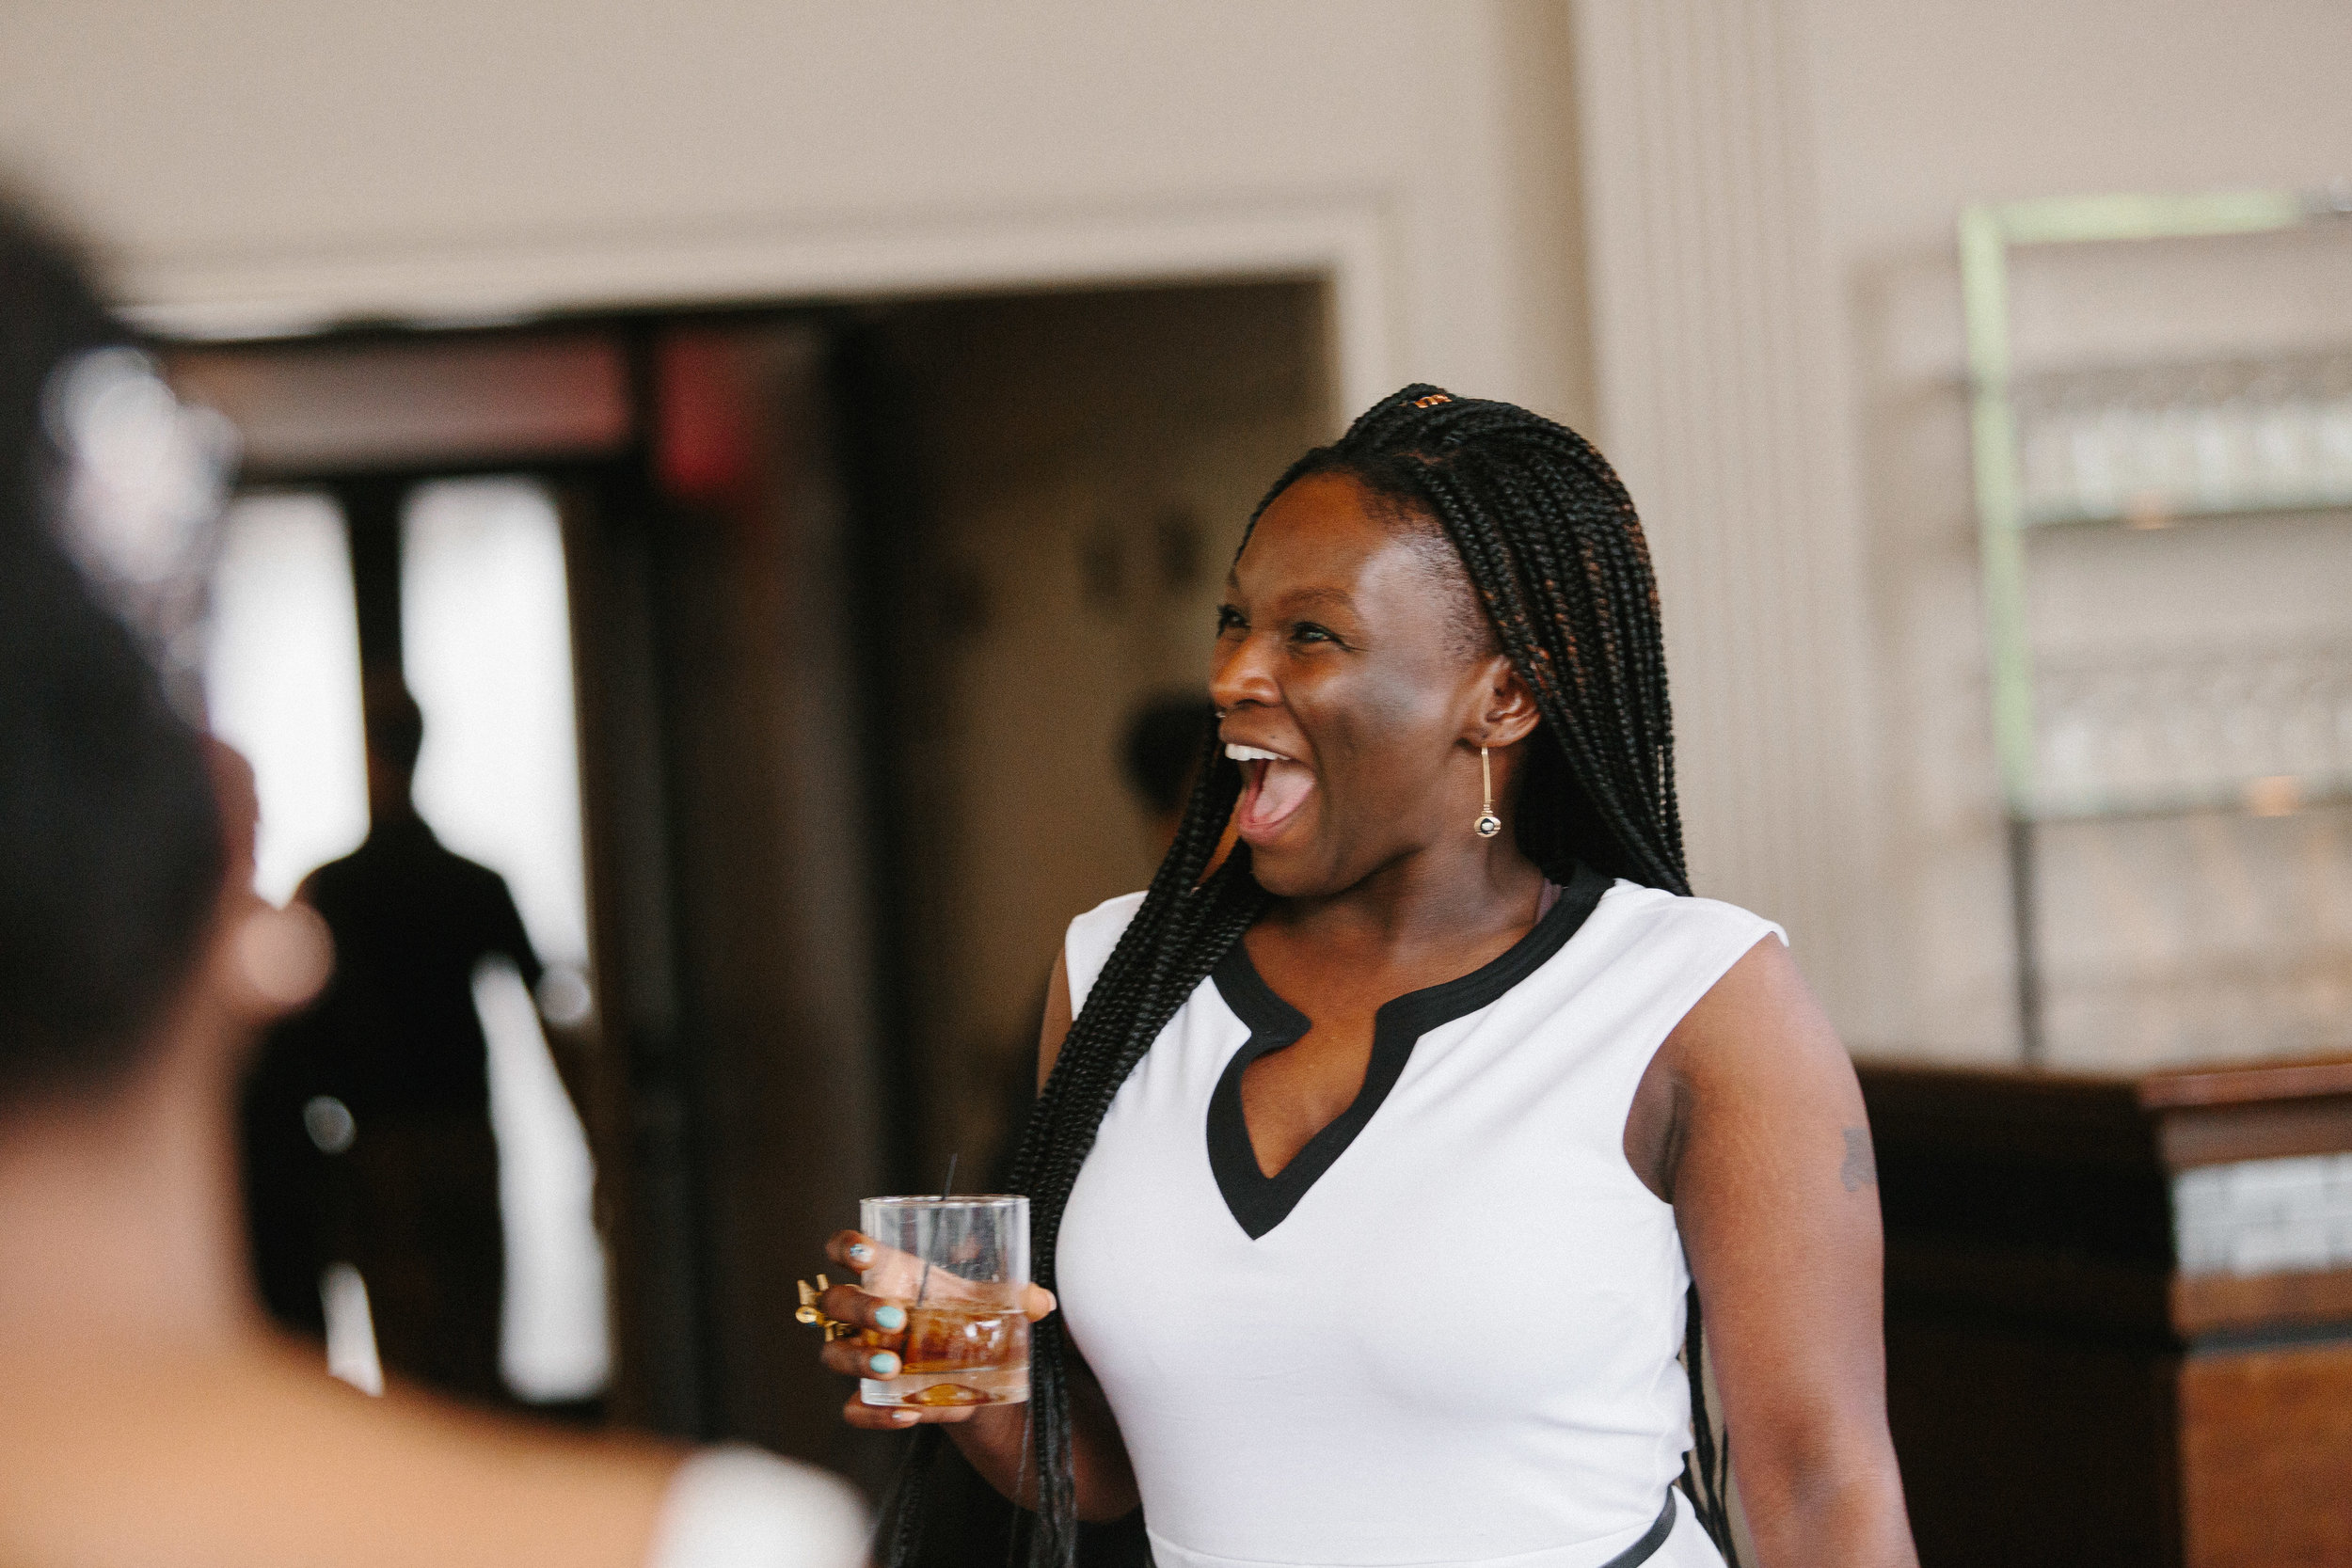 the_atrium_wedding_atlanta_norcross_lifestyle_photographers_lgbtq_1490.jpg